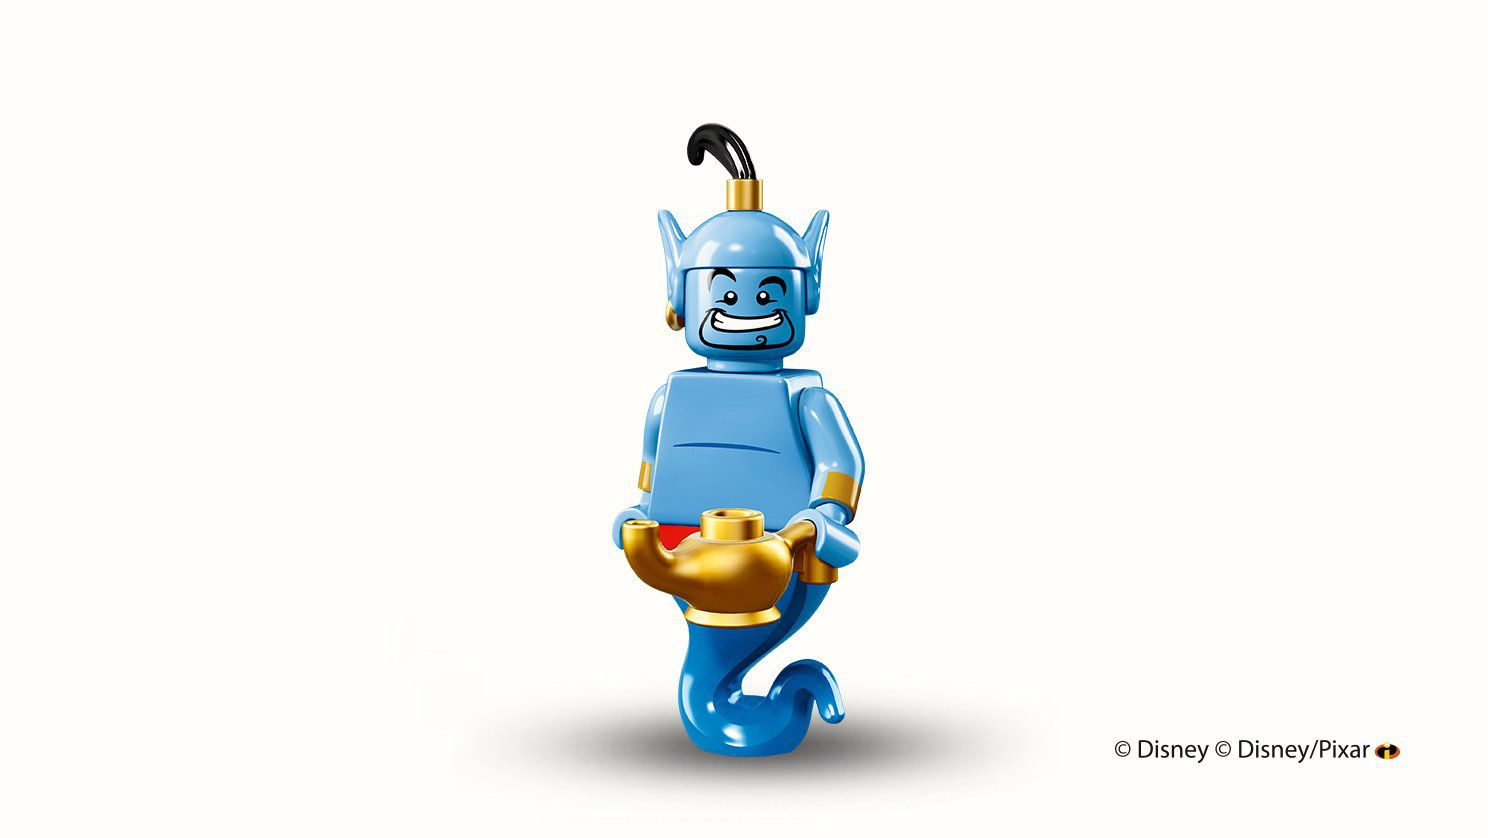 LEGO Collectable Minifigures 71012 LEGO® Minifiguren Disney Serie LEGO_71012_Minifigures_The_Disney_Series_figure-19.jpg